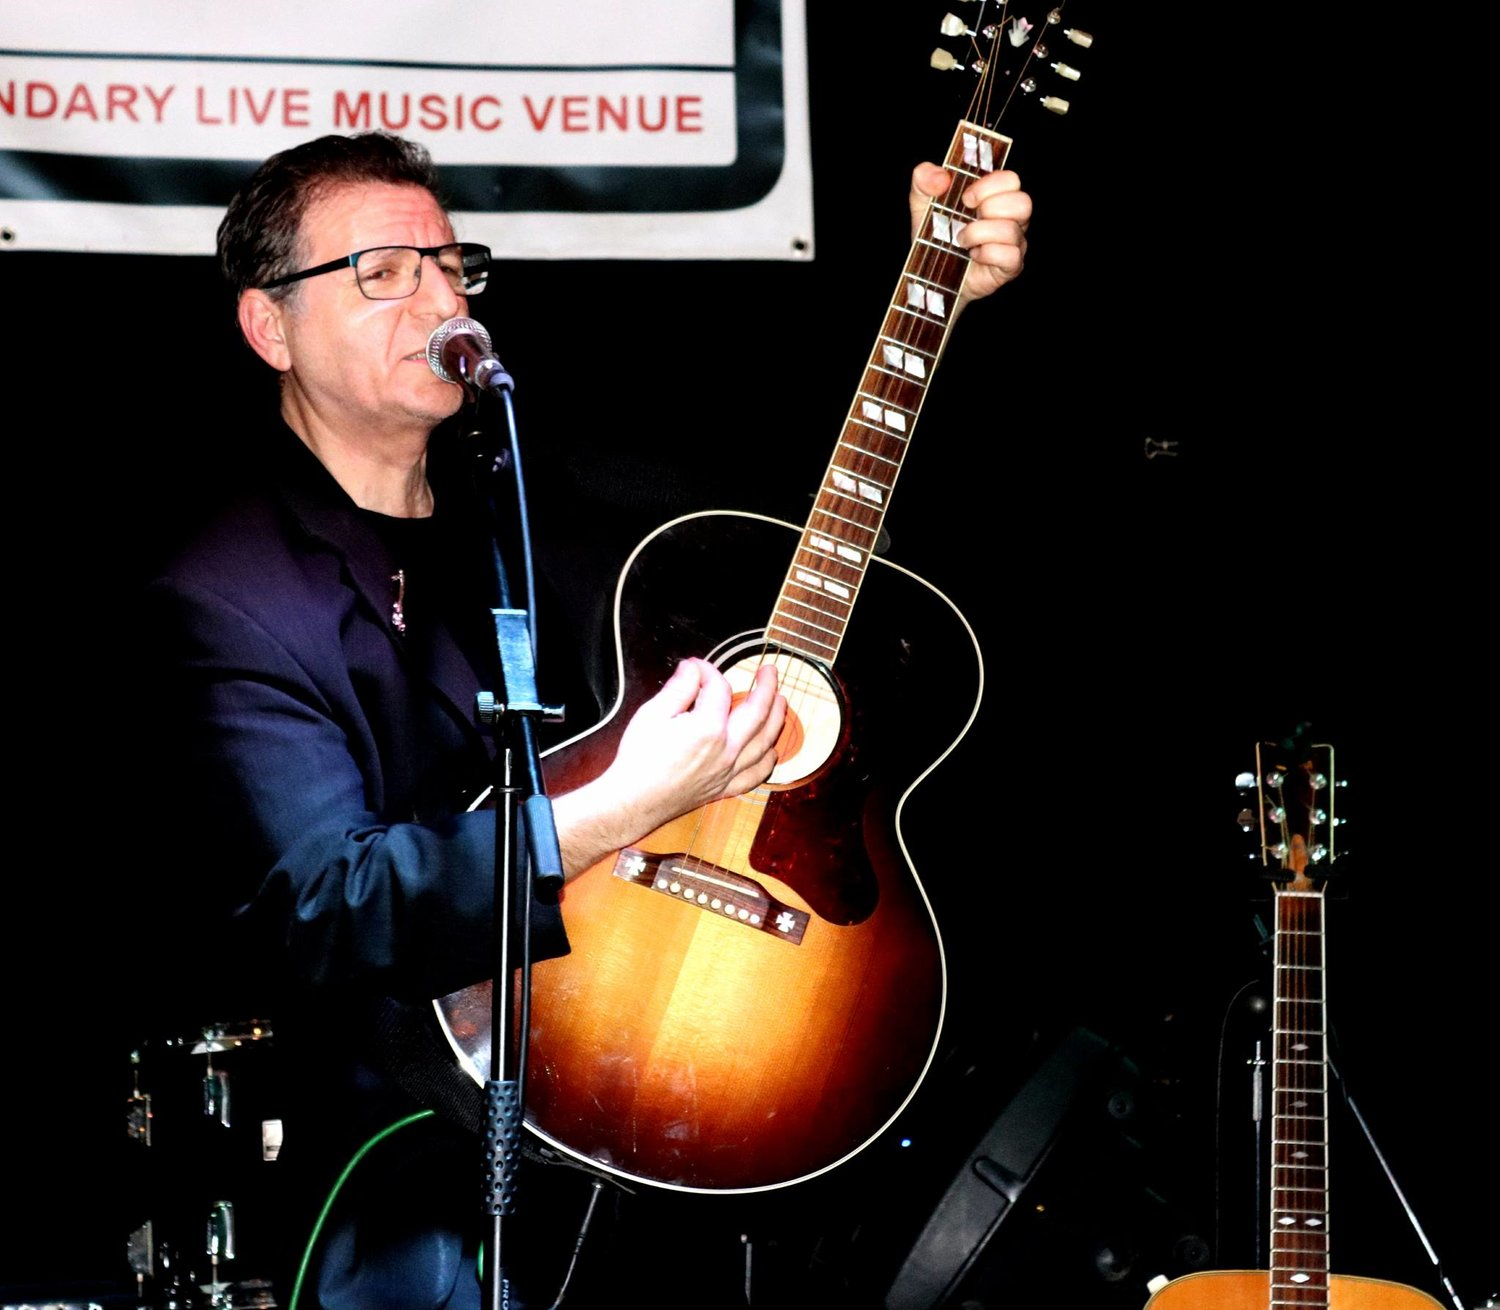 INDIE - Free Lunch + The Fabulous Micky C + Guests (Slot available - email elbowgigs@hotmail.co.uk) at The Fiddler's Elbow promotional image